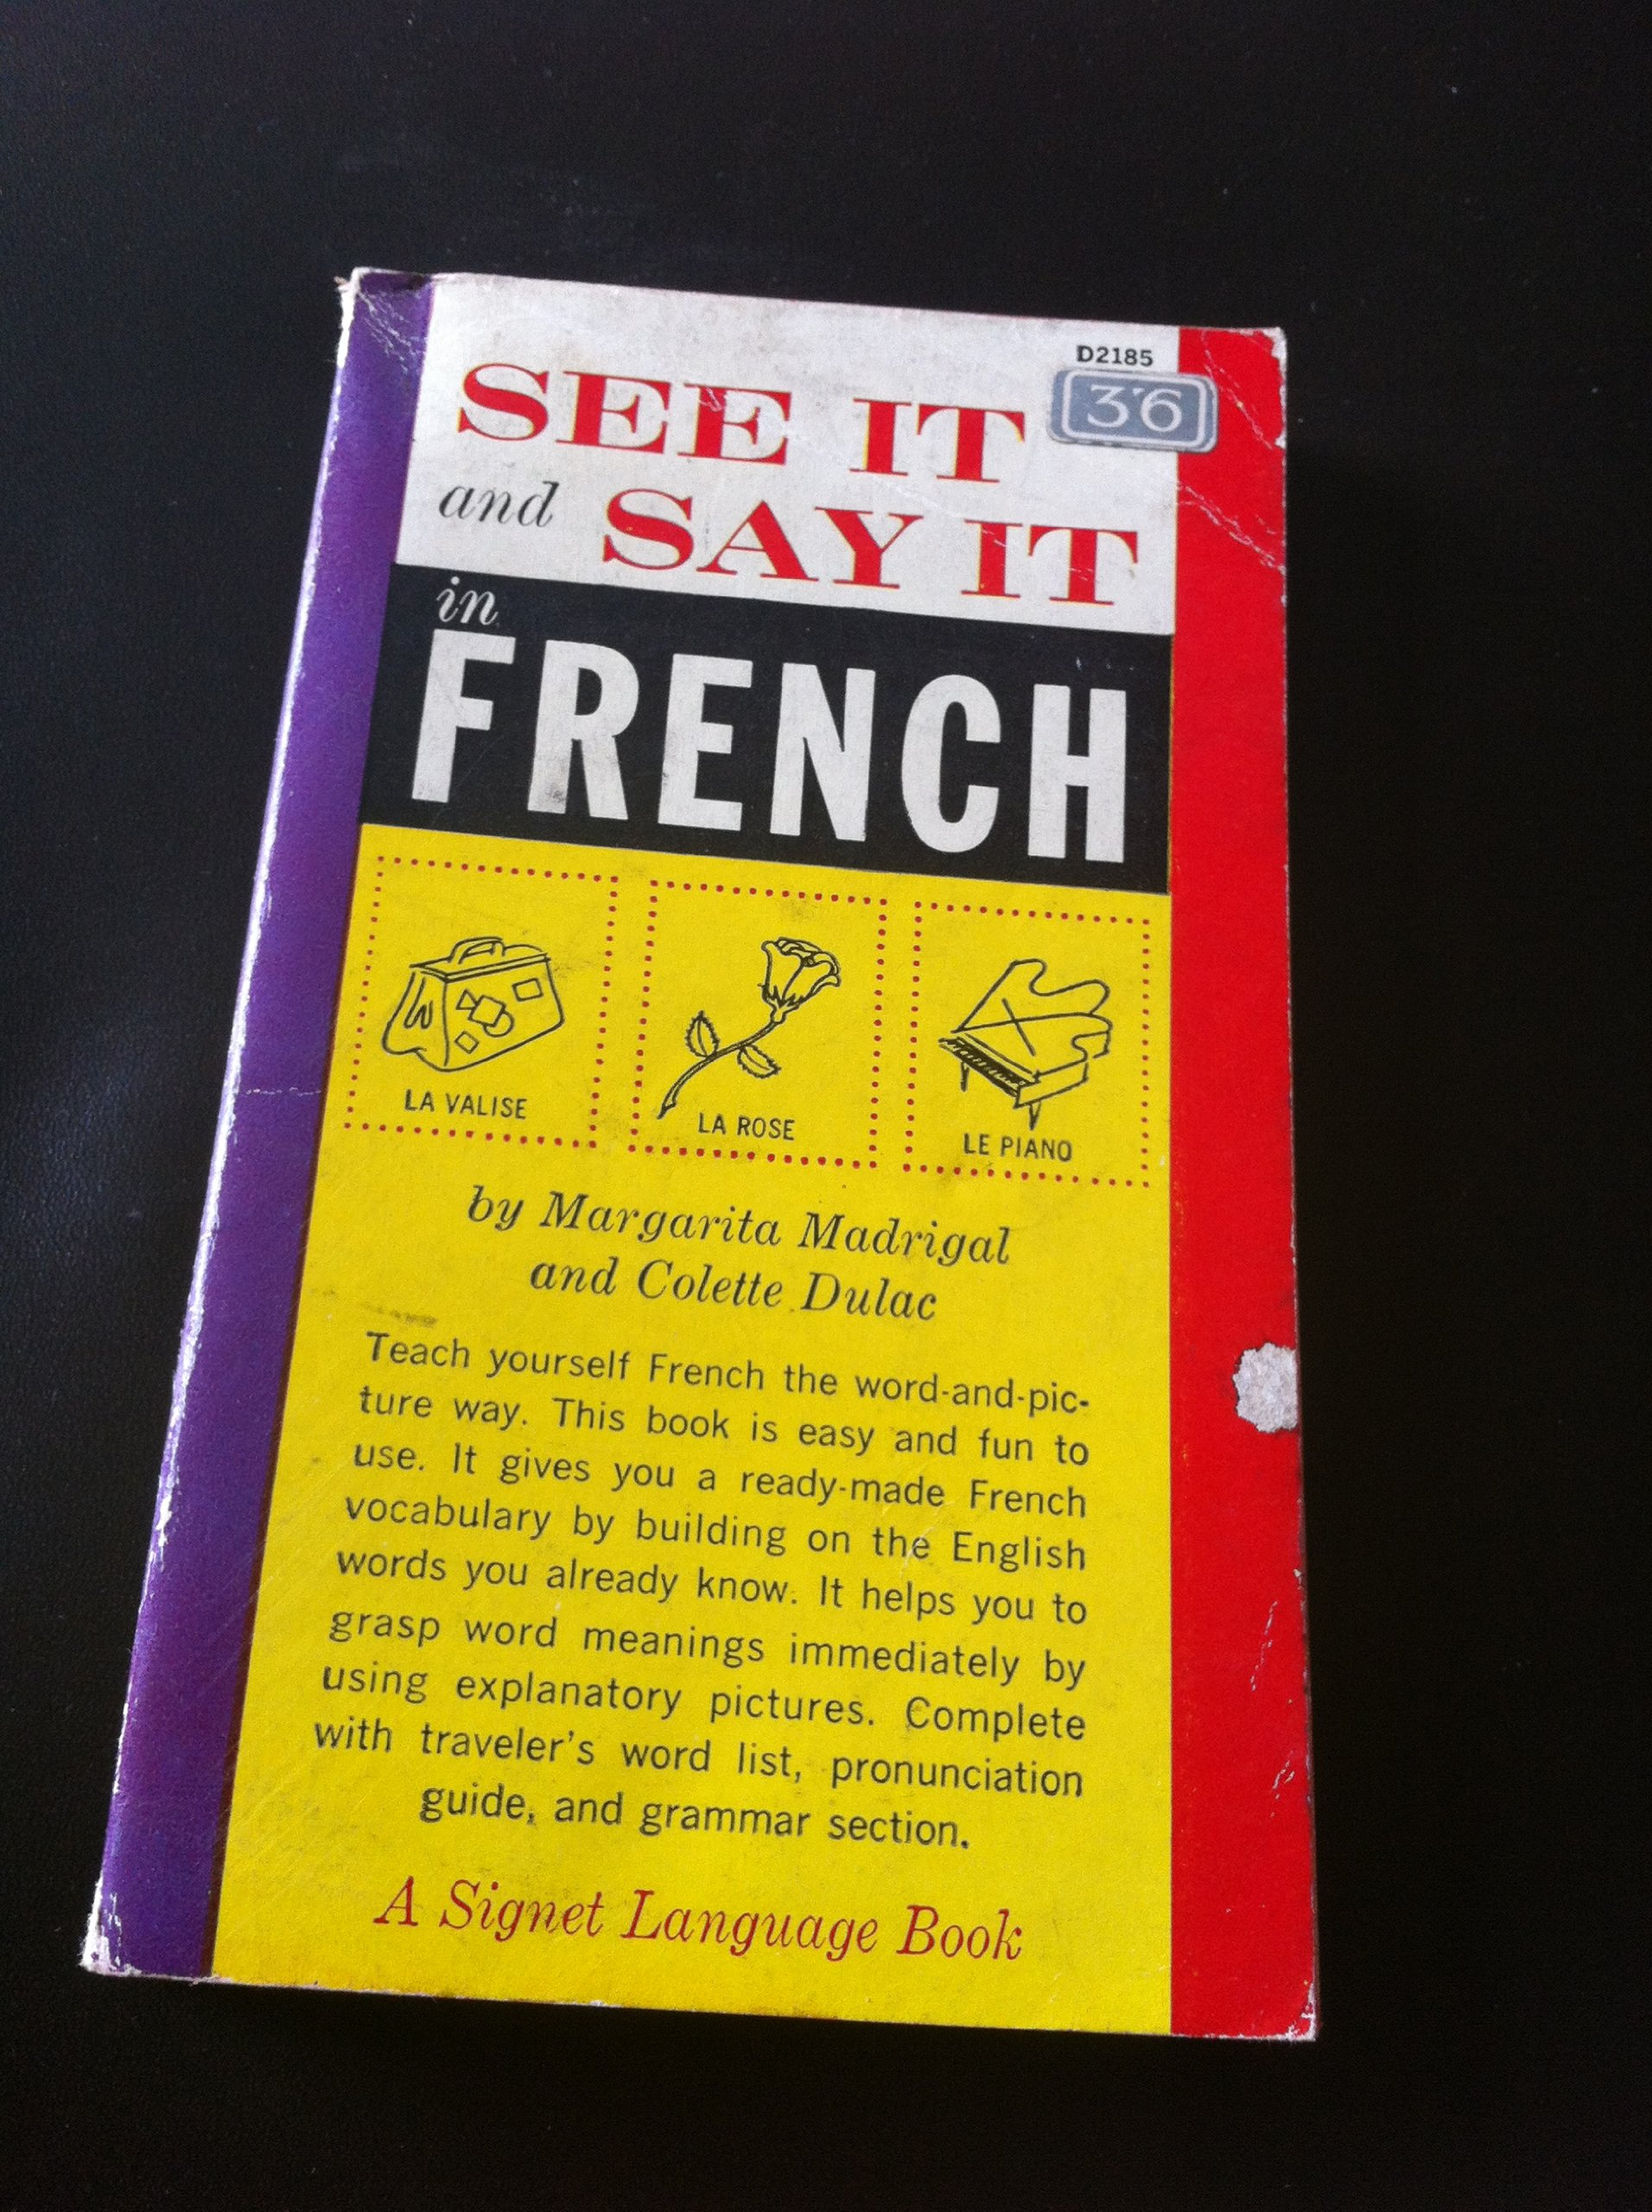 Amazon buy see it and say it in french signet books book amazon buy see it and say it in french signet books book online at low prices in india see it and say it in french signet books reviews ratings solutioingenieria Choice Image